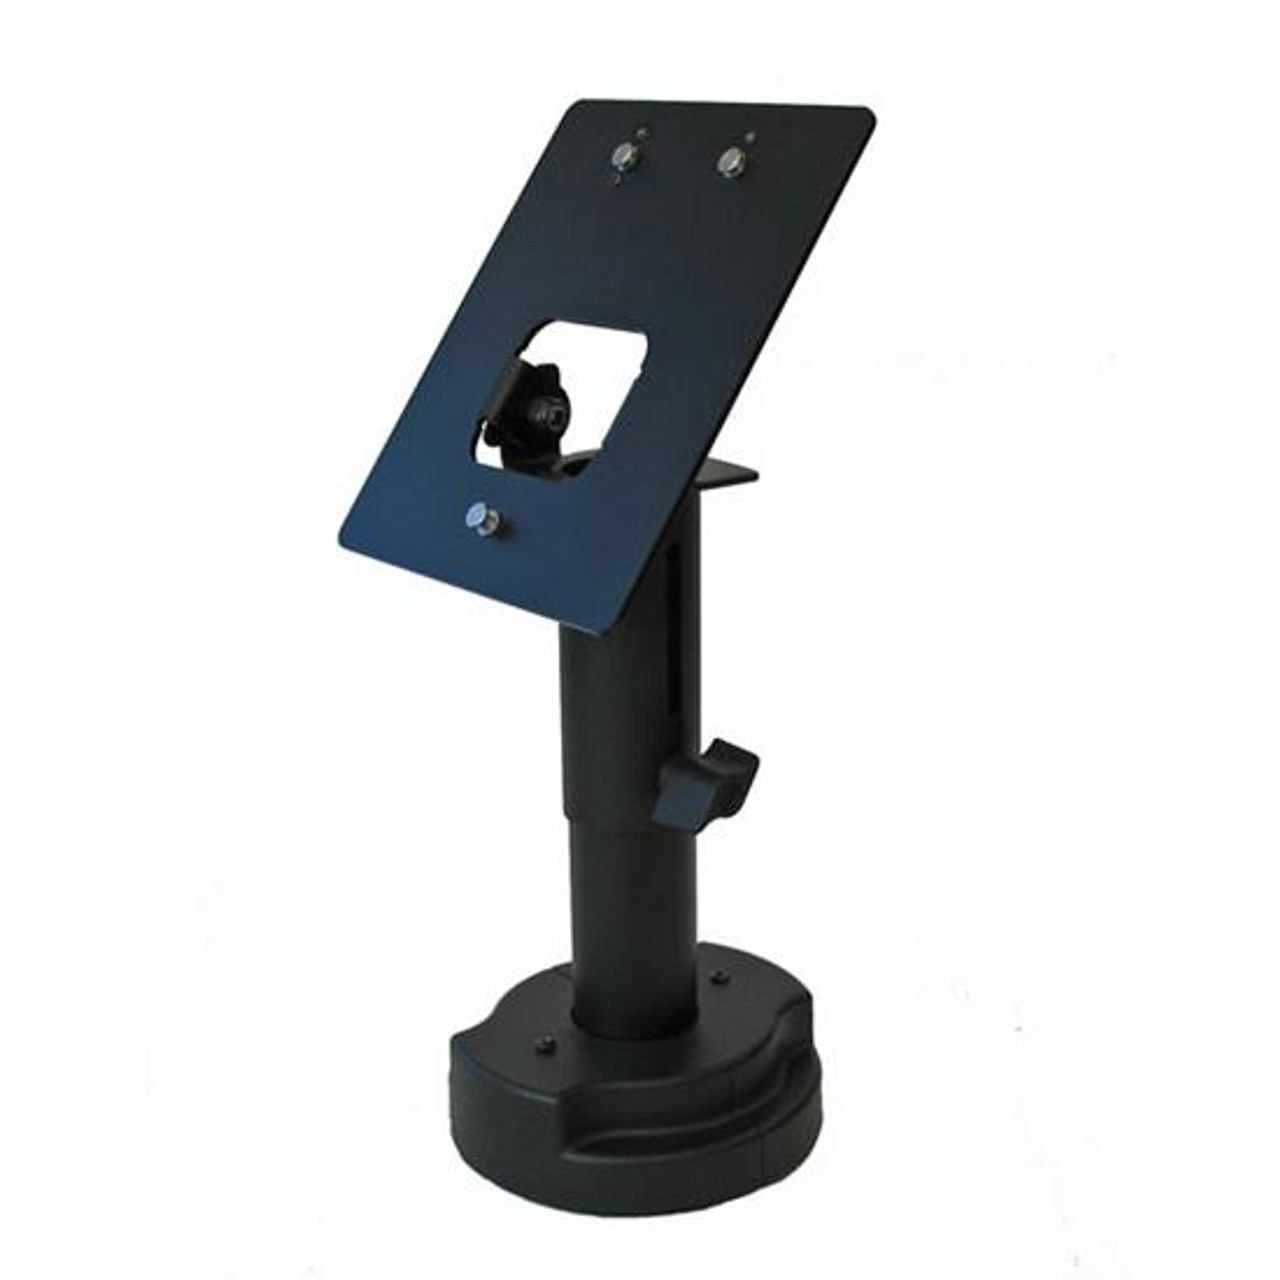 Verifone MX830 Credit Card Stand Telescoping Pedestal by Swivel Stands